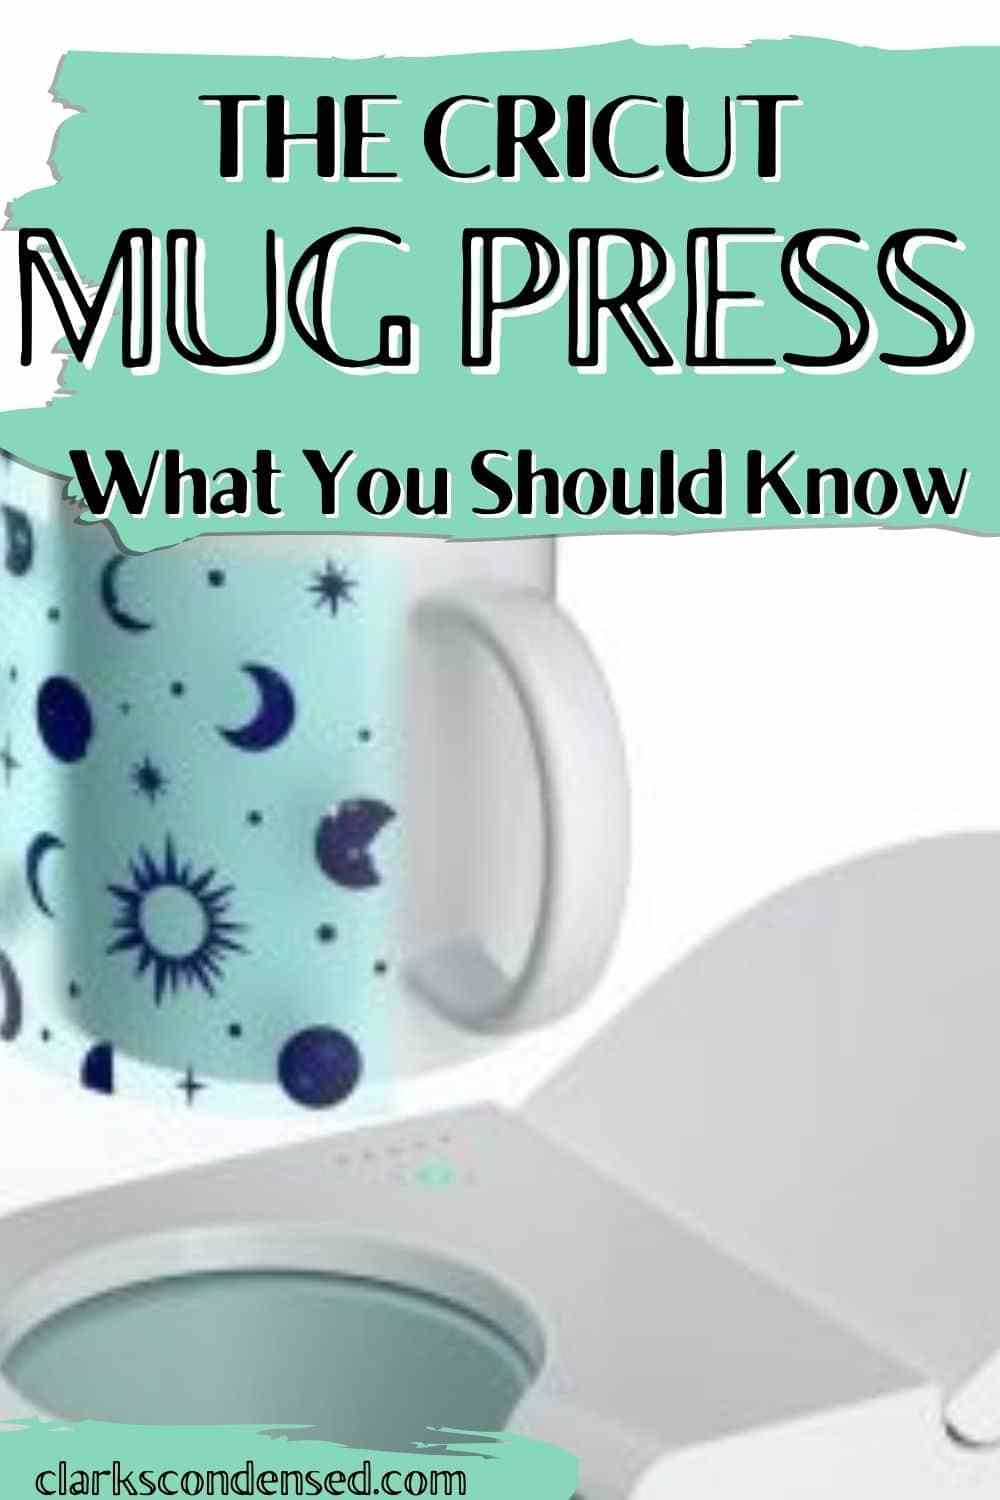 The Cricut Mug Press - What's All the Fuss About?